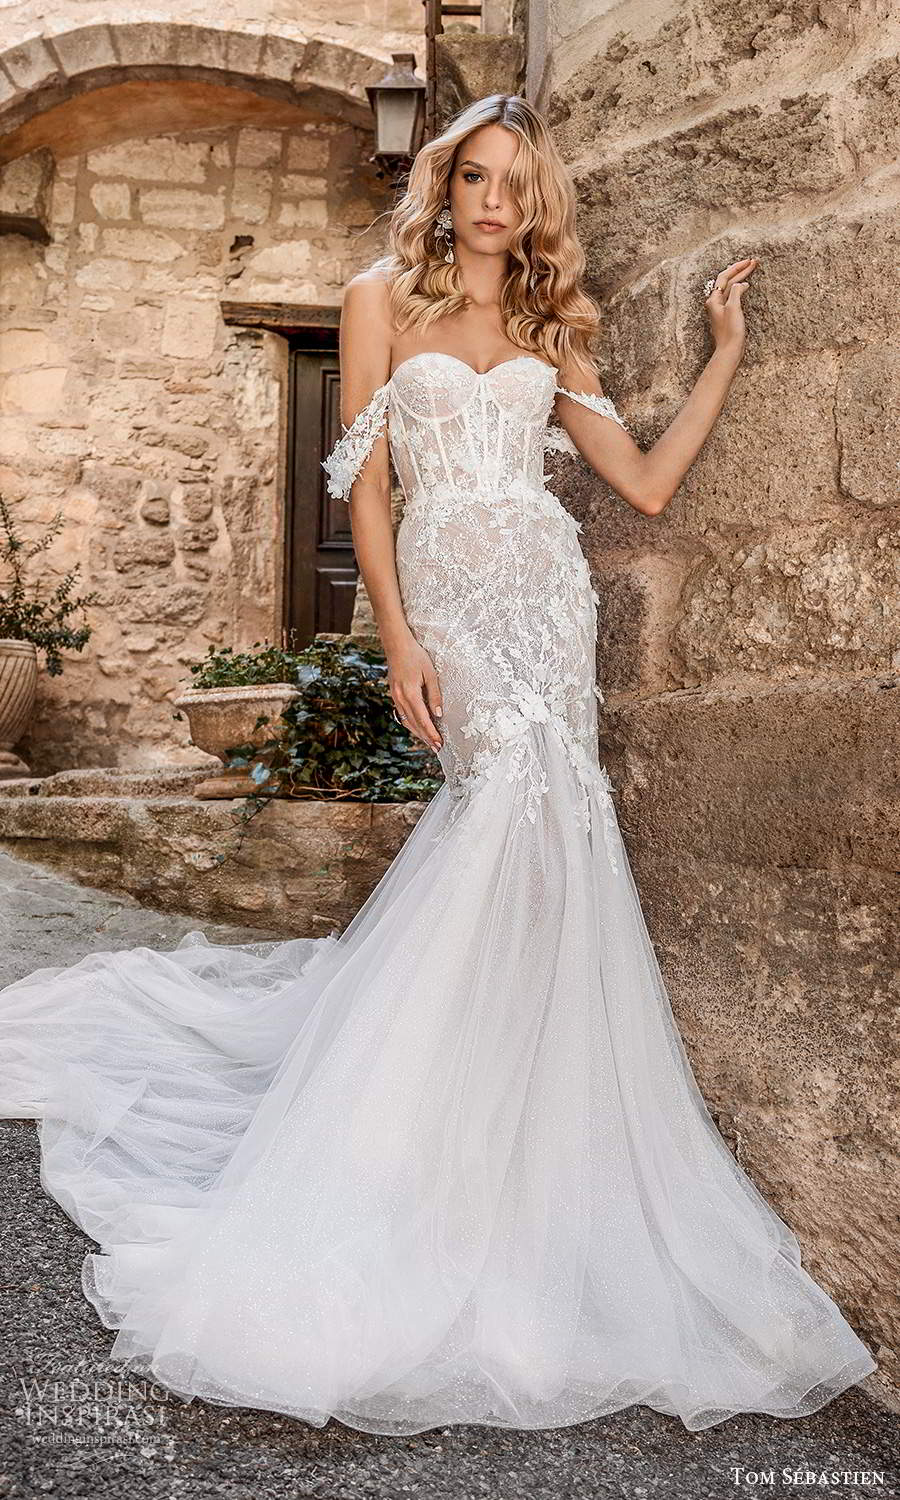 tom sebastien 2021 bridal provence off shoulder straps sweetheart nckline heavily embellished bodice fit flare mermaid wedding dress chapel train (4) mv